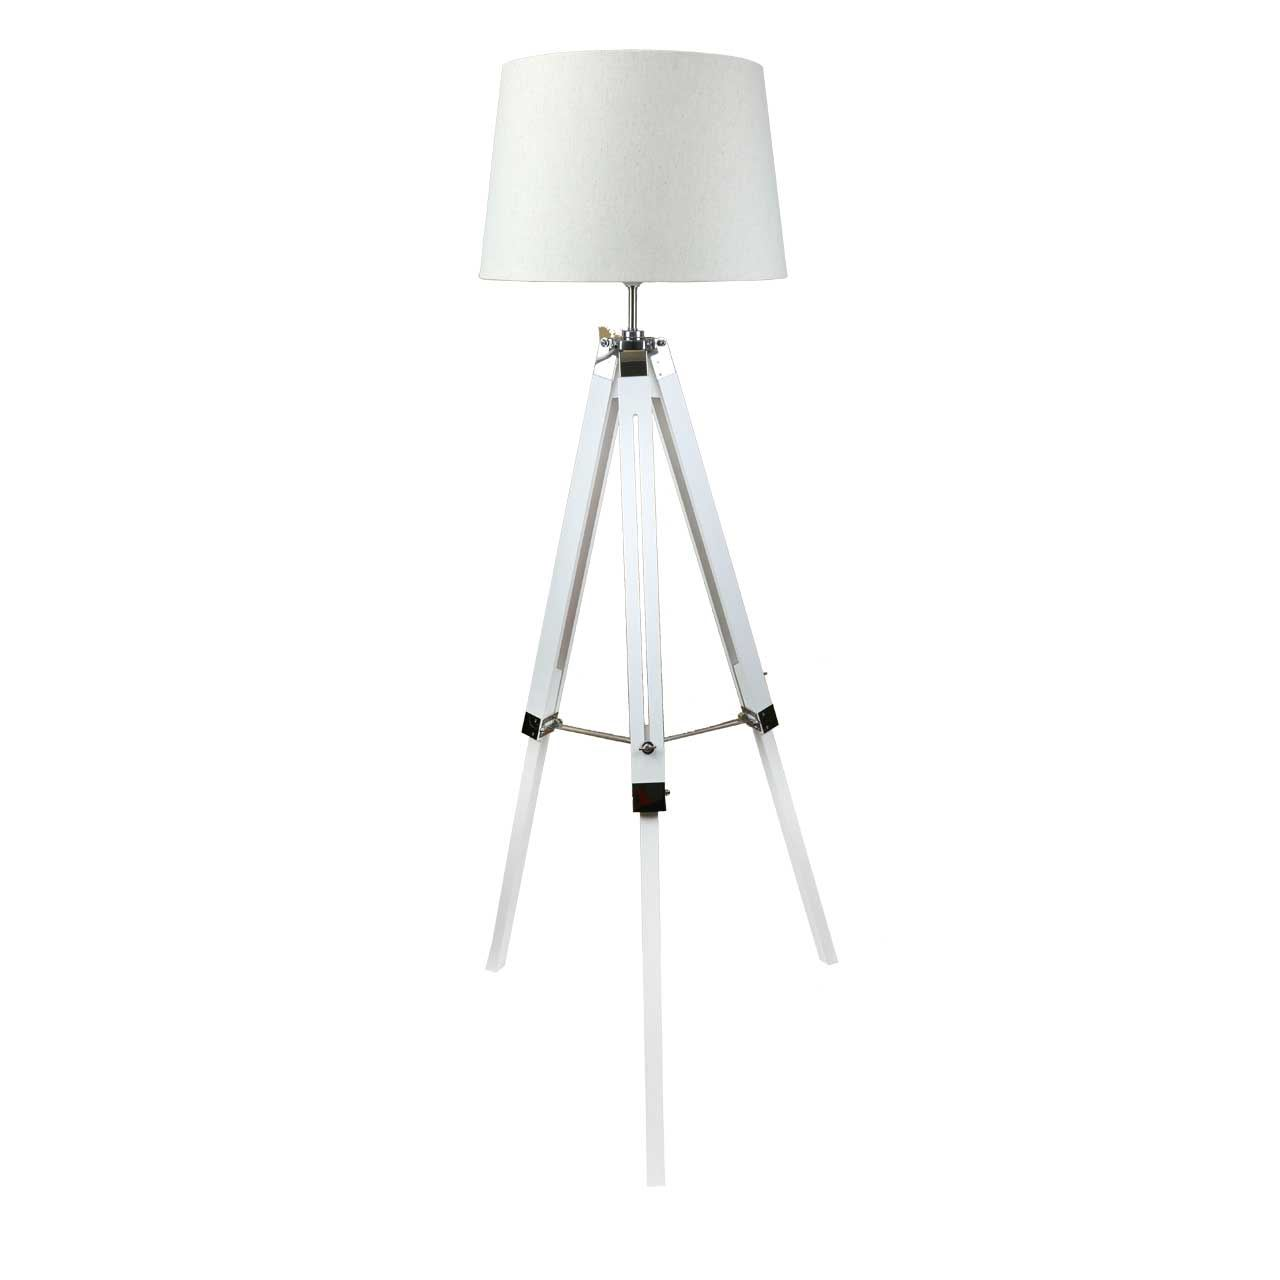 Modern White Wood Tripod Floor Lamps Bedside Light Lampshade - Big Living